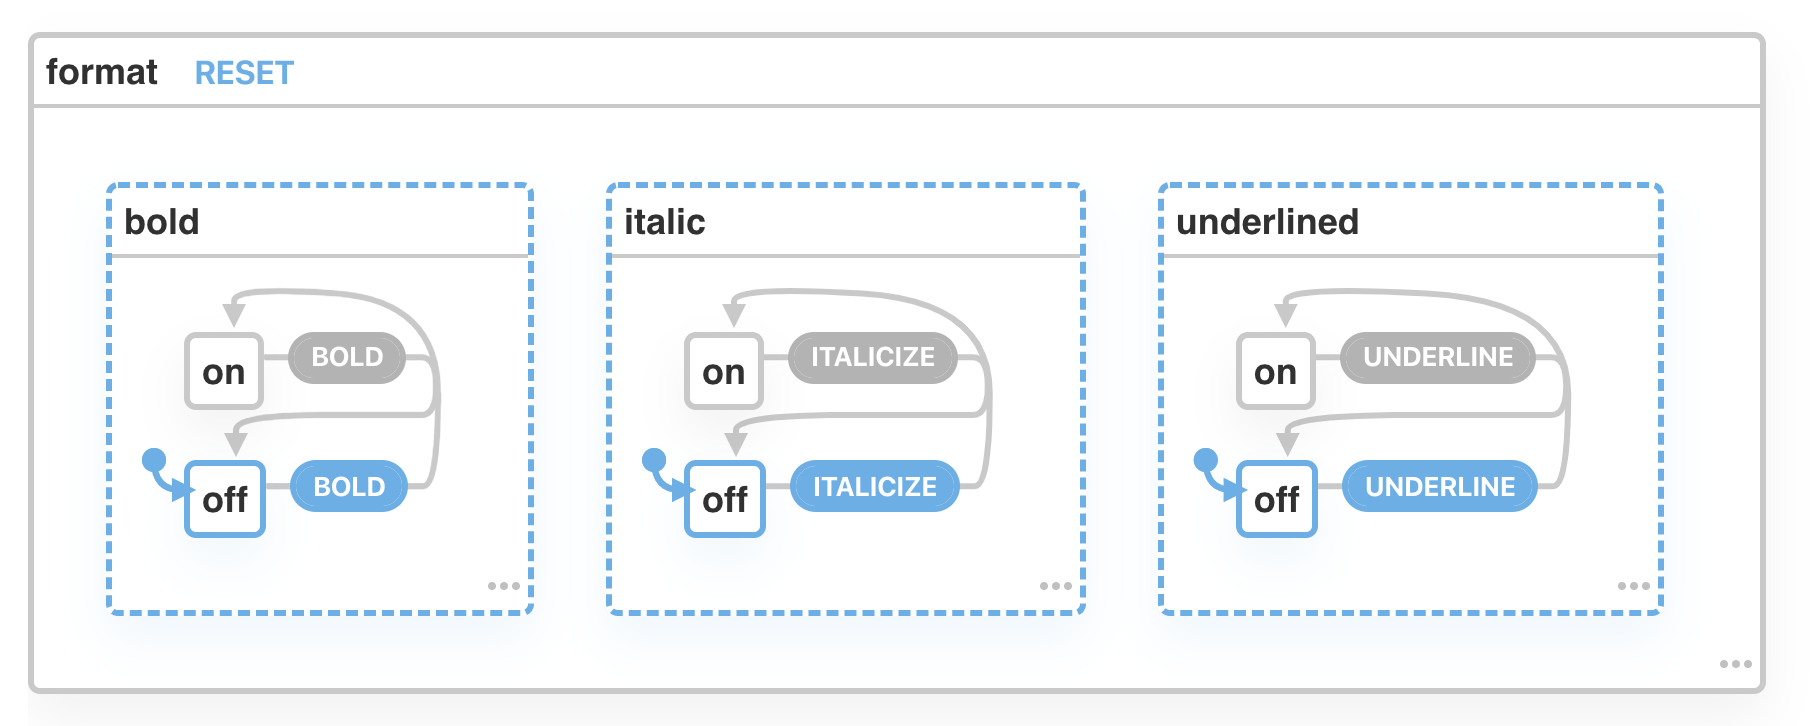 Parallel states for bold, italic, and underline, with events to toggle each